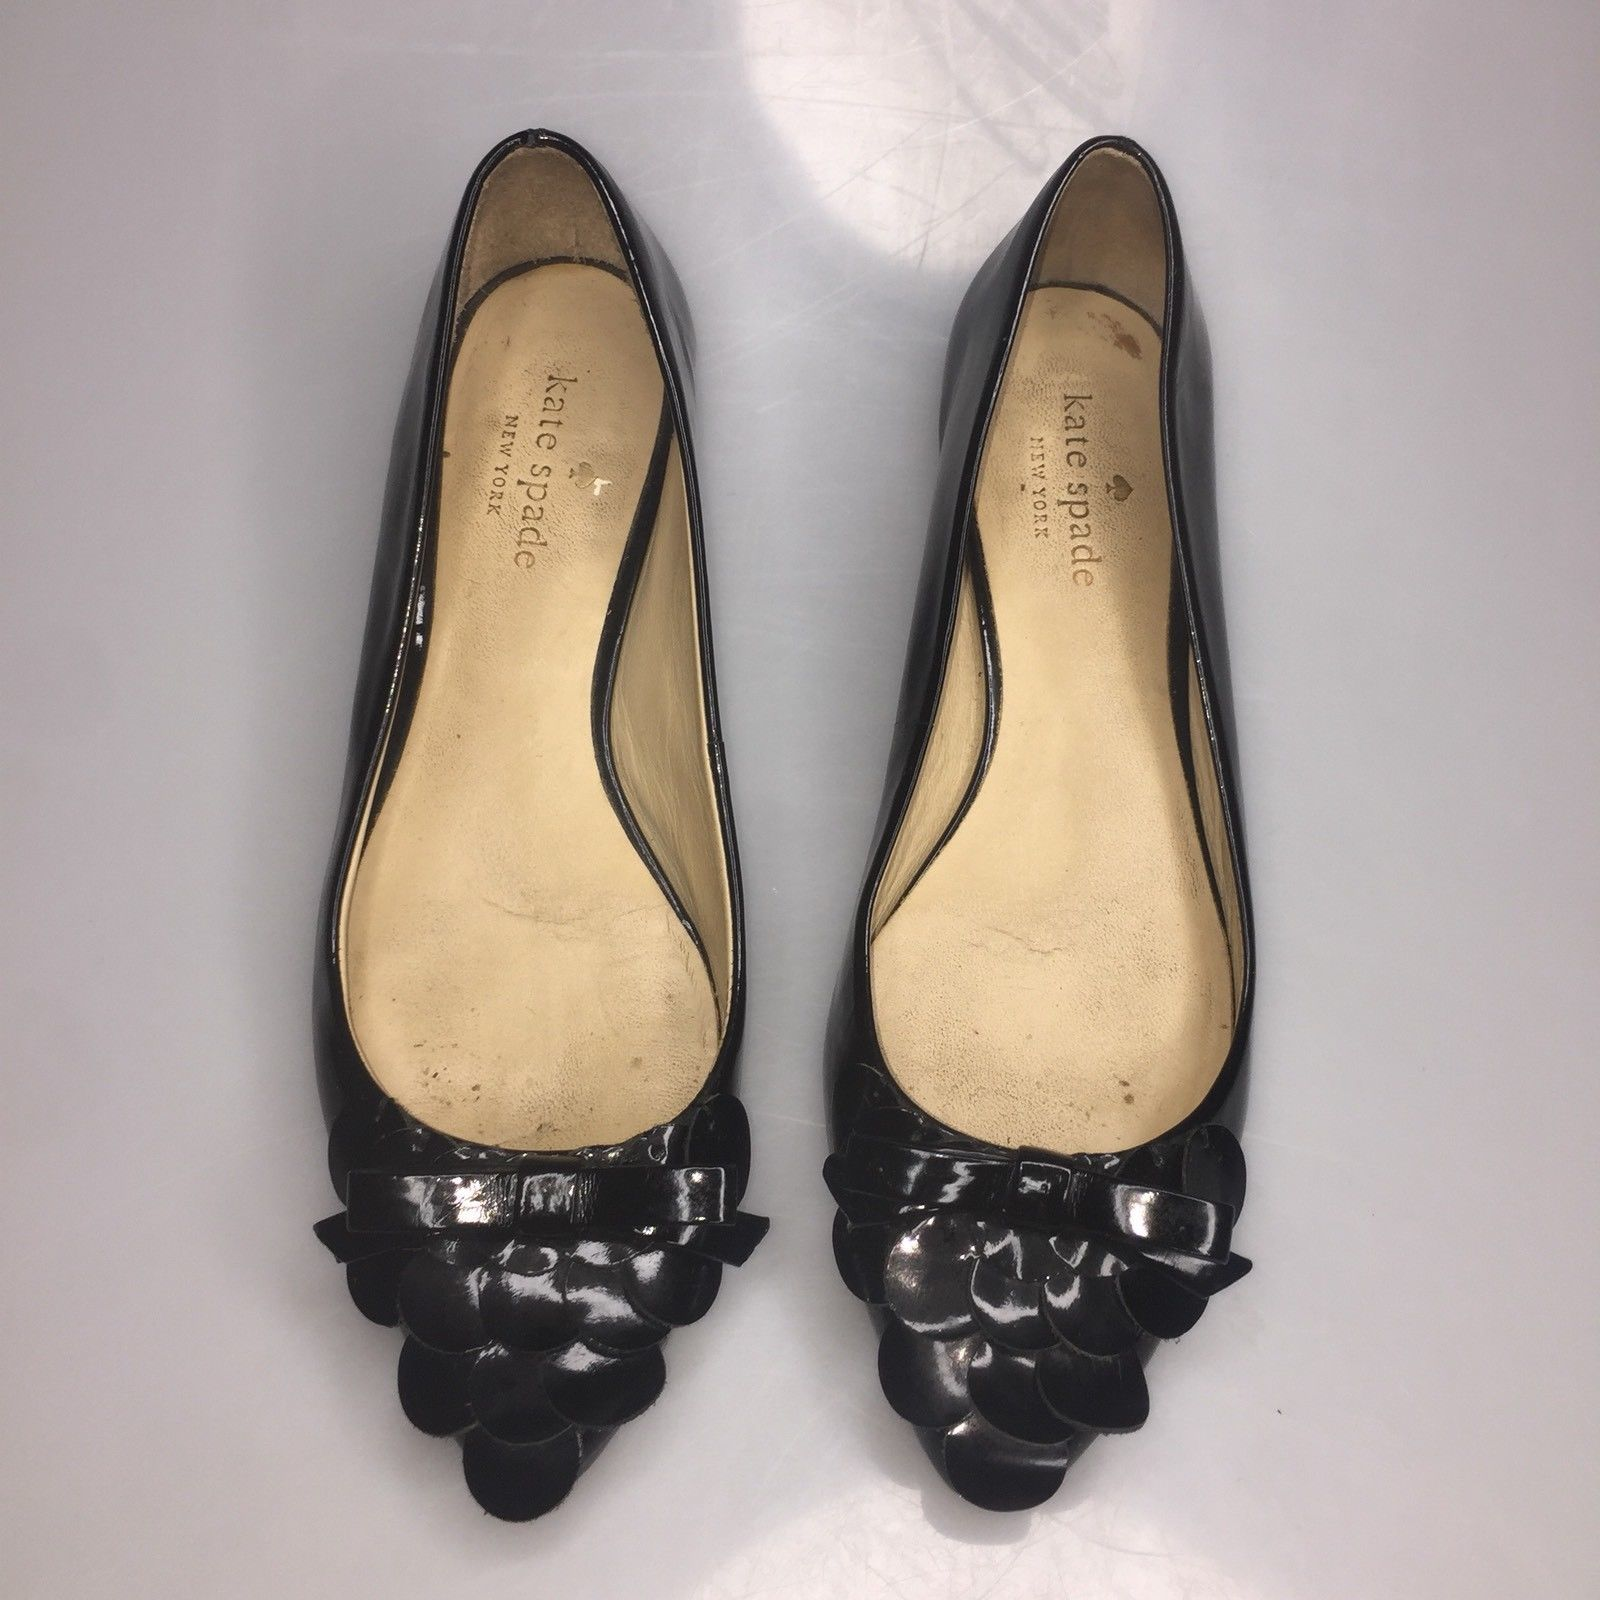 Kate Spade Bow Patent Leather Pointy Toe Black Flats Women's Size 6 M